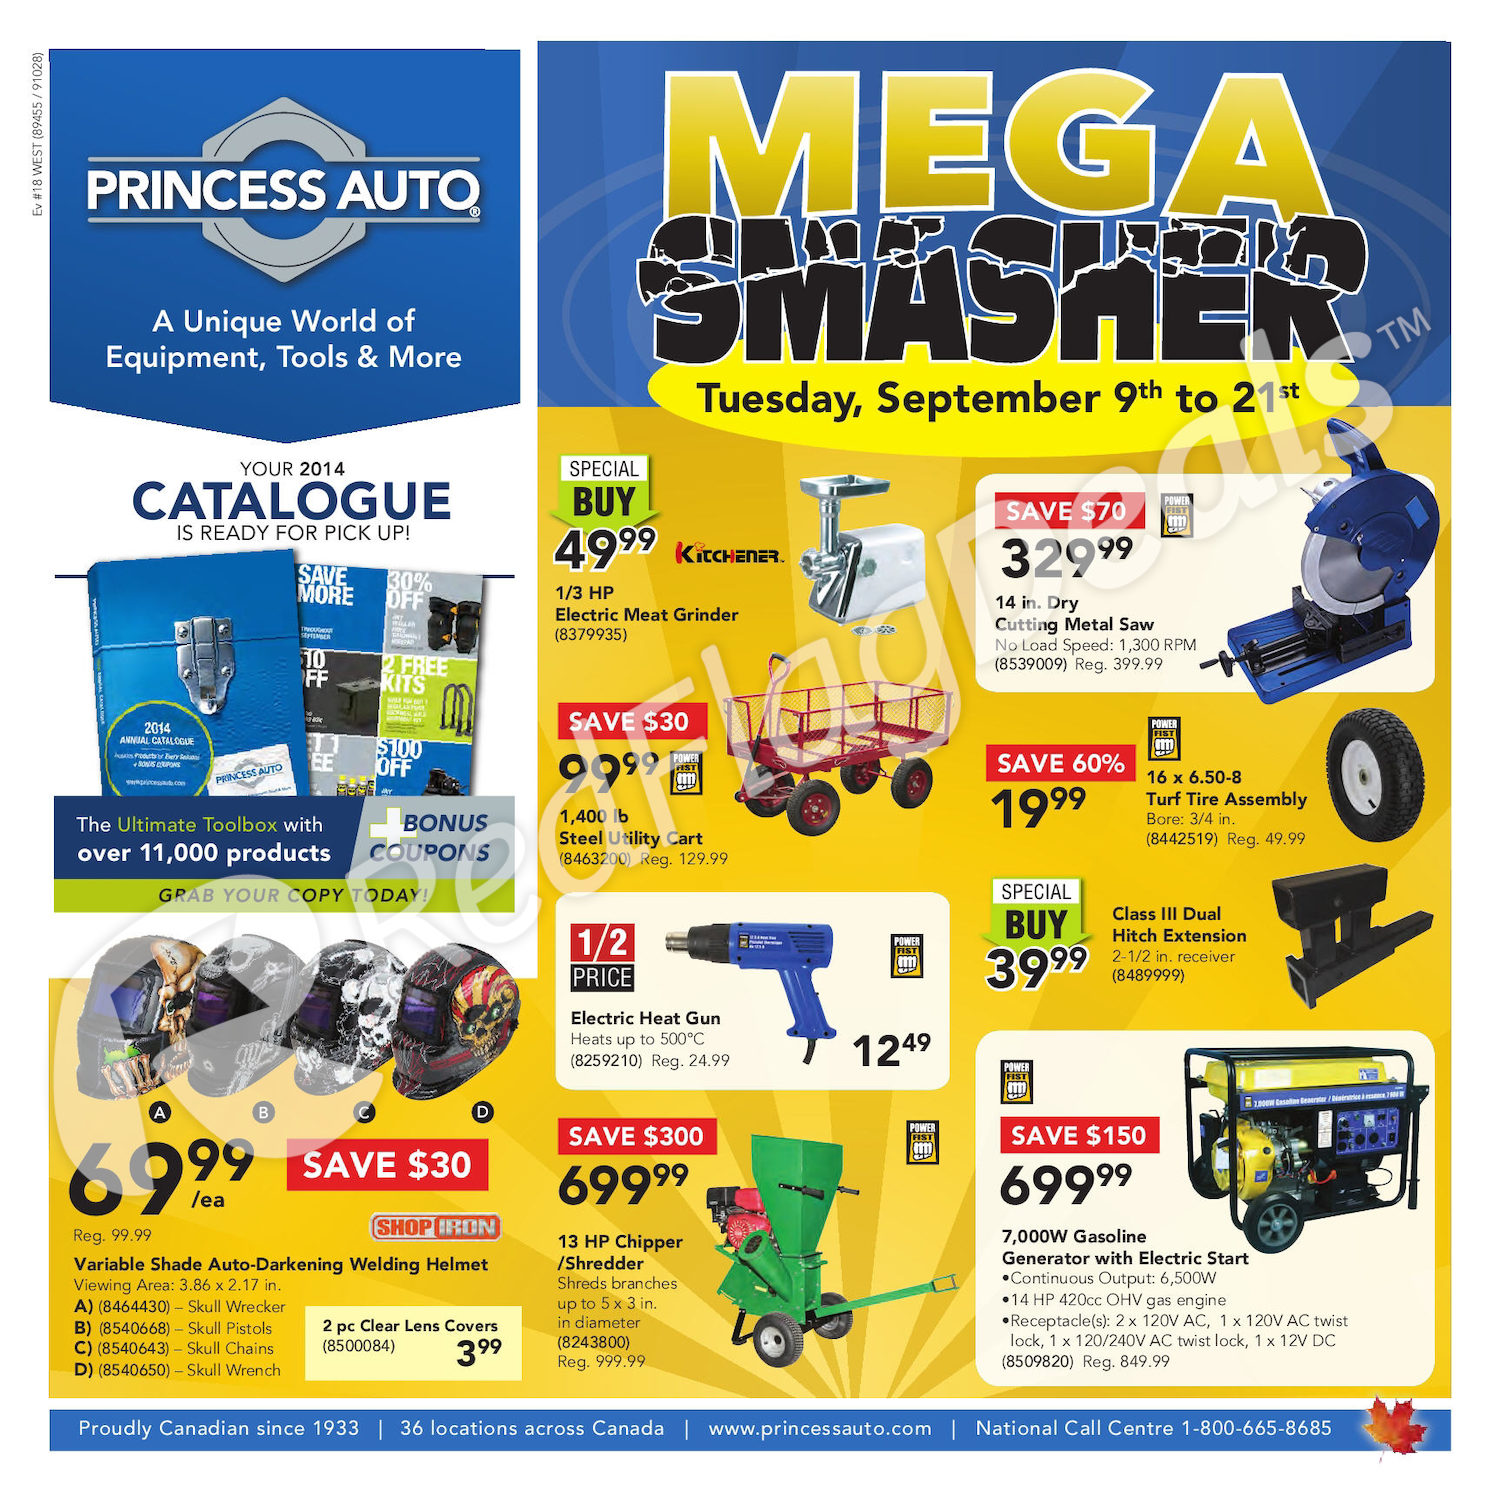 Trailer Wiring Harness Princess Auto Trusted Diagram Horse Weekly Flyer 2 Week Mega Smasher Sep 9